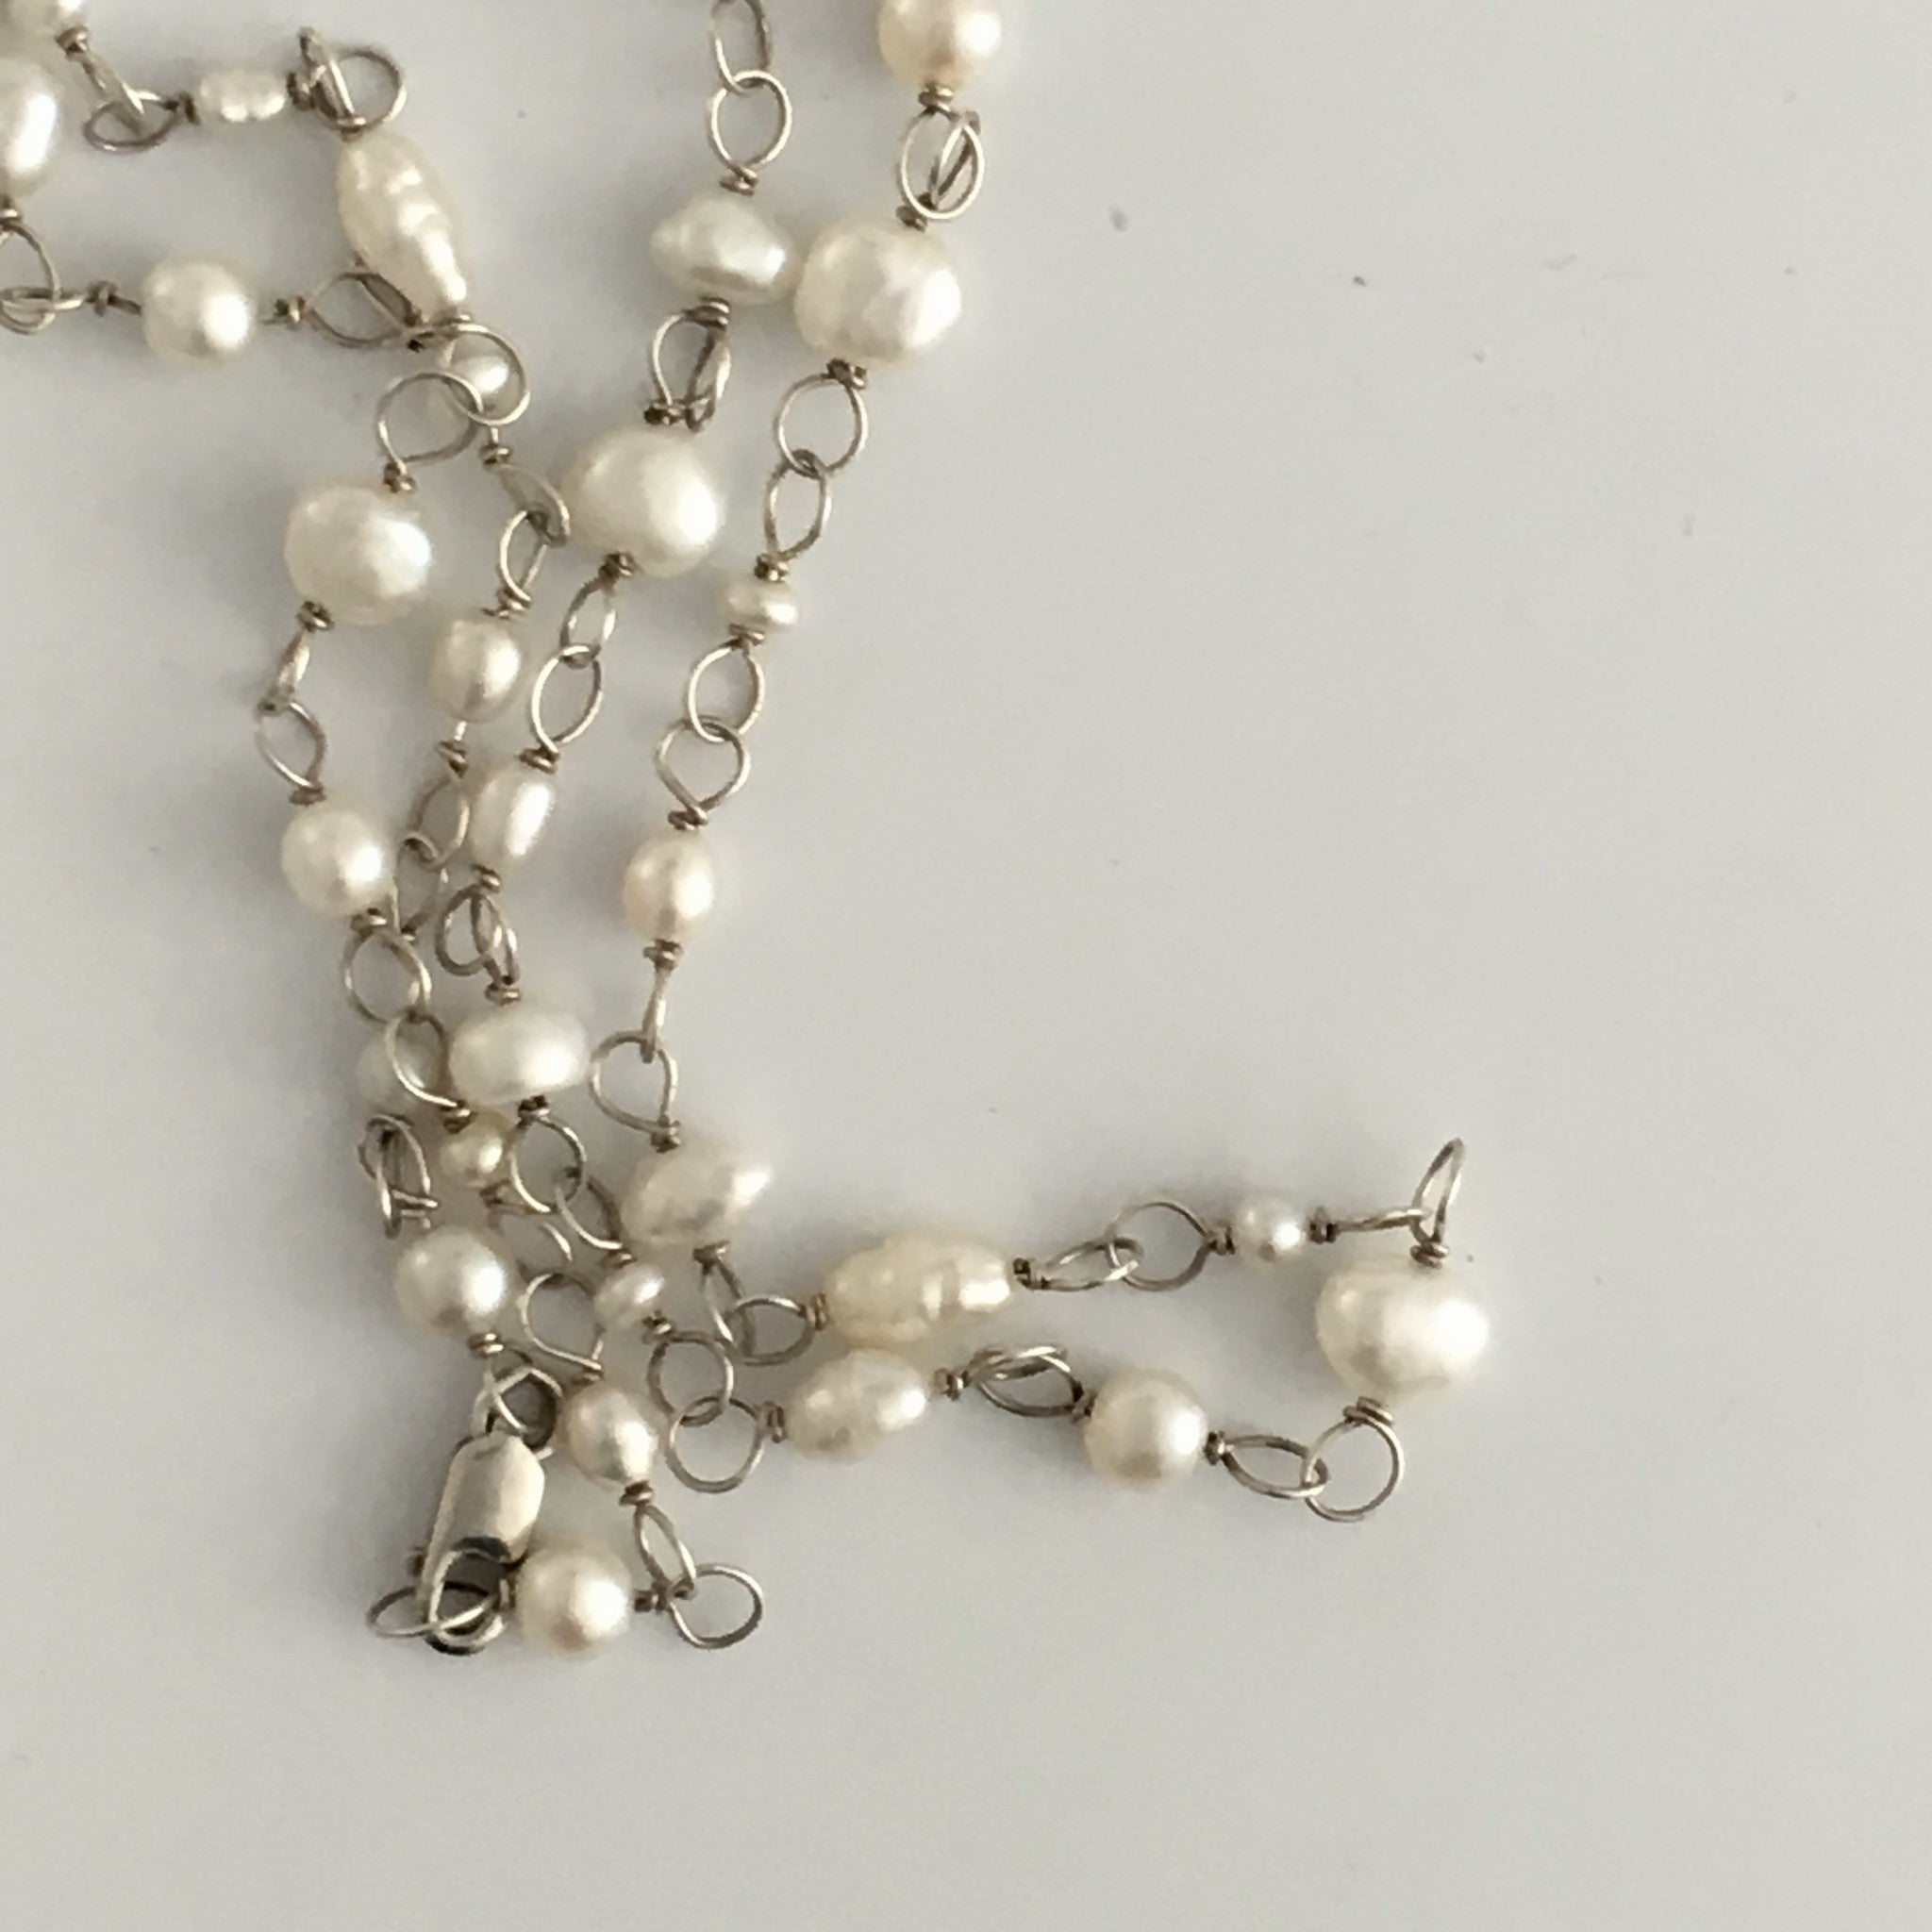 Necklace - Bridal Pearls